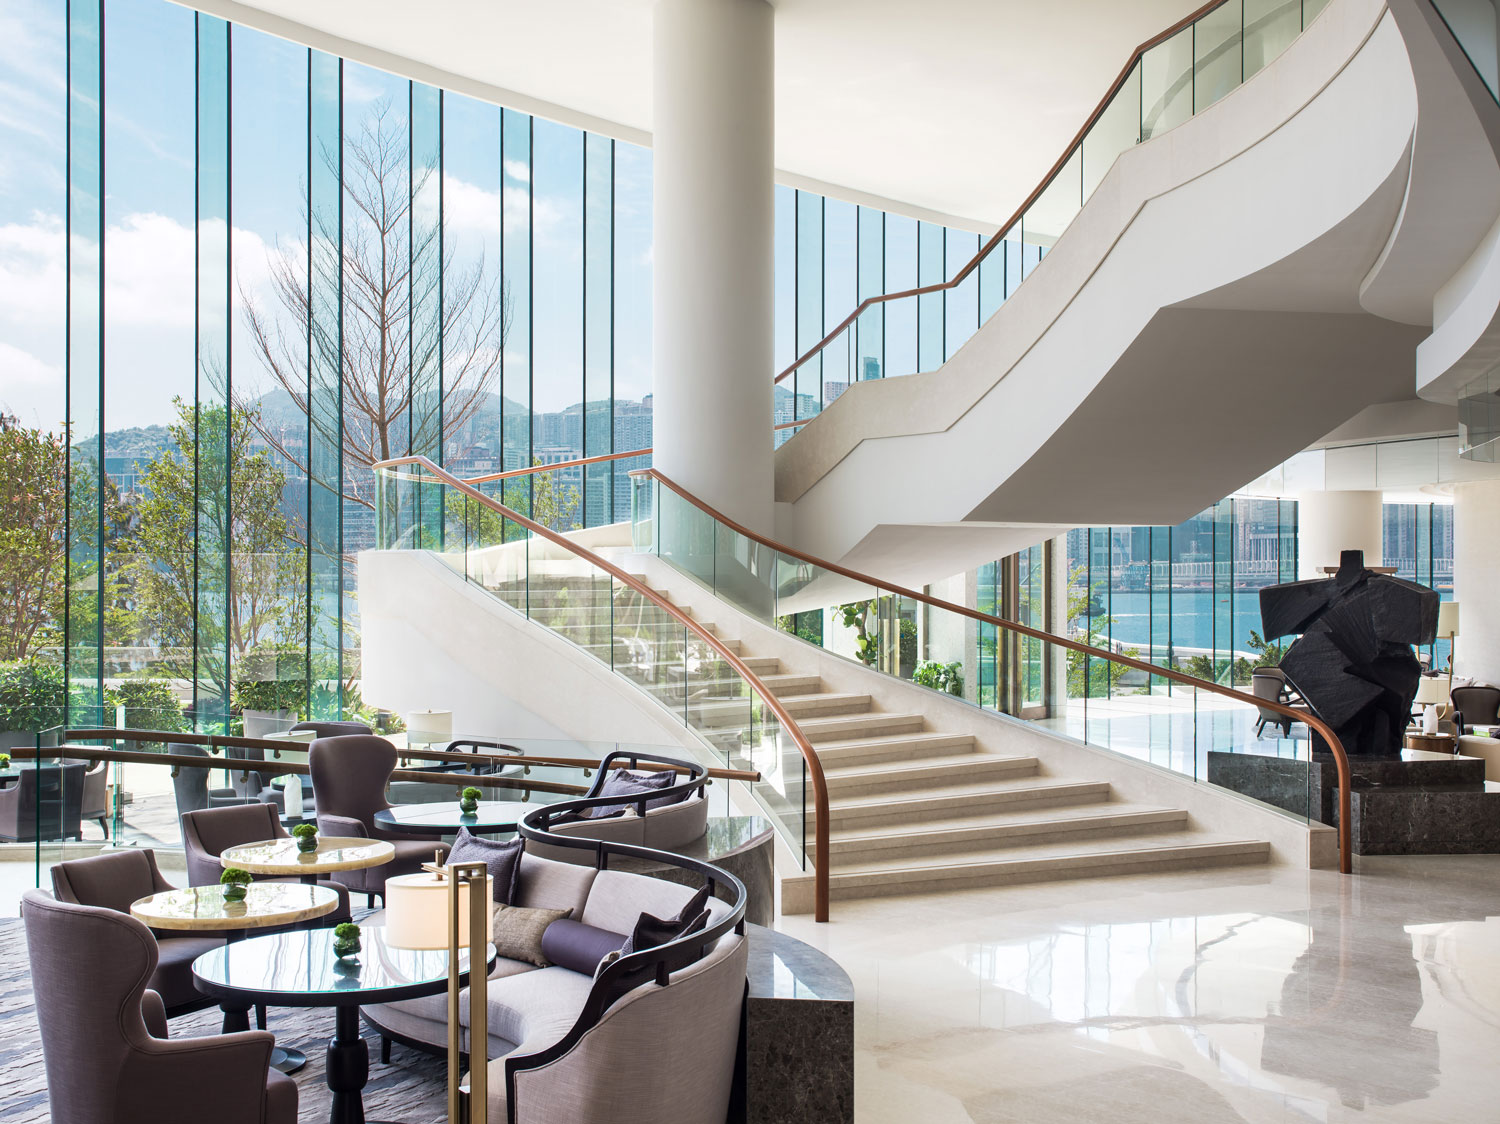 The kerry hotel by andr fu opens in hong kong yellowtrace for Design hotel hong kong